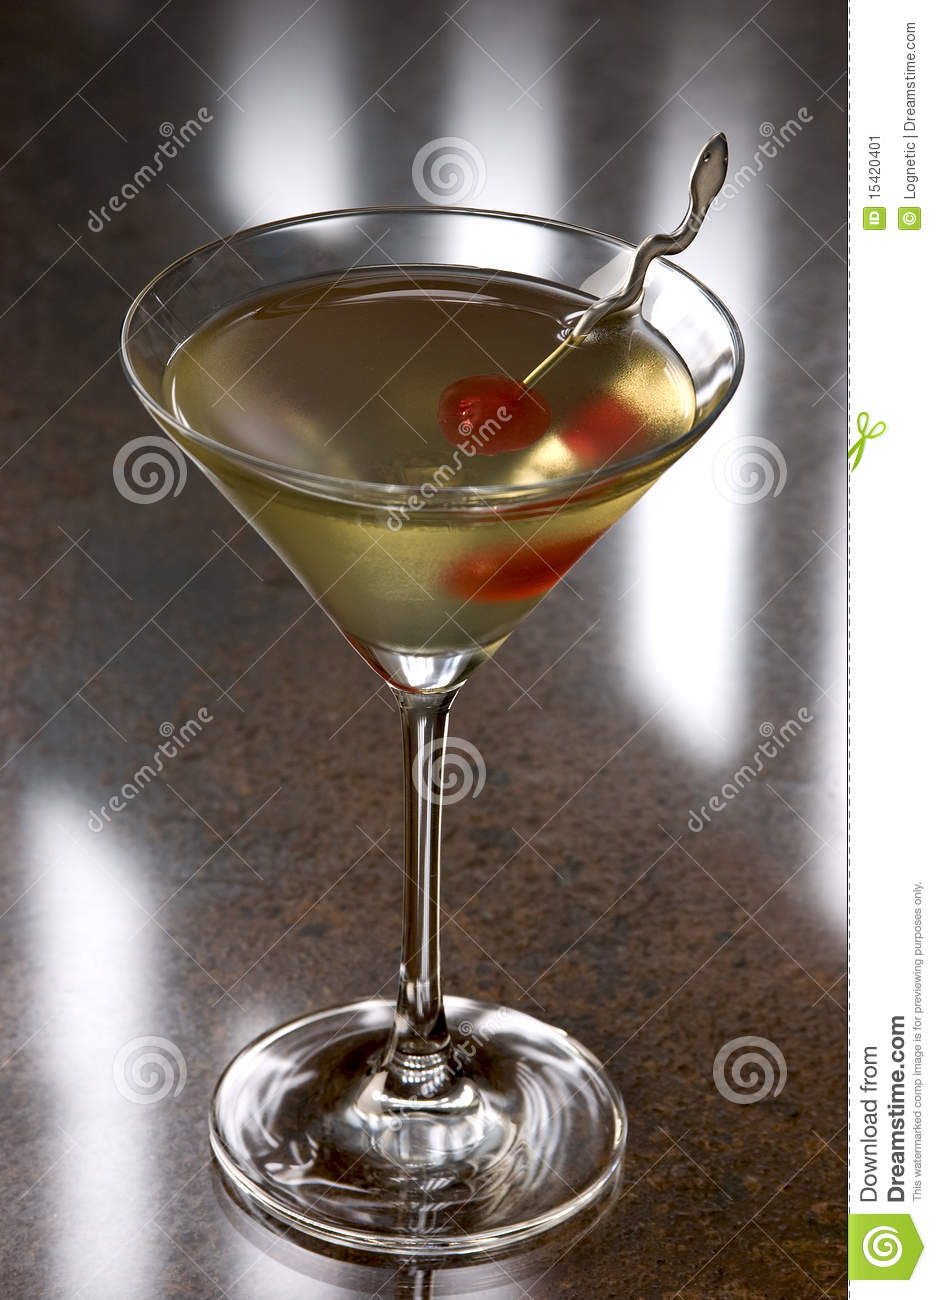 Tipperary cocktail with a cherry in a martini glass.